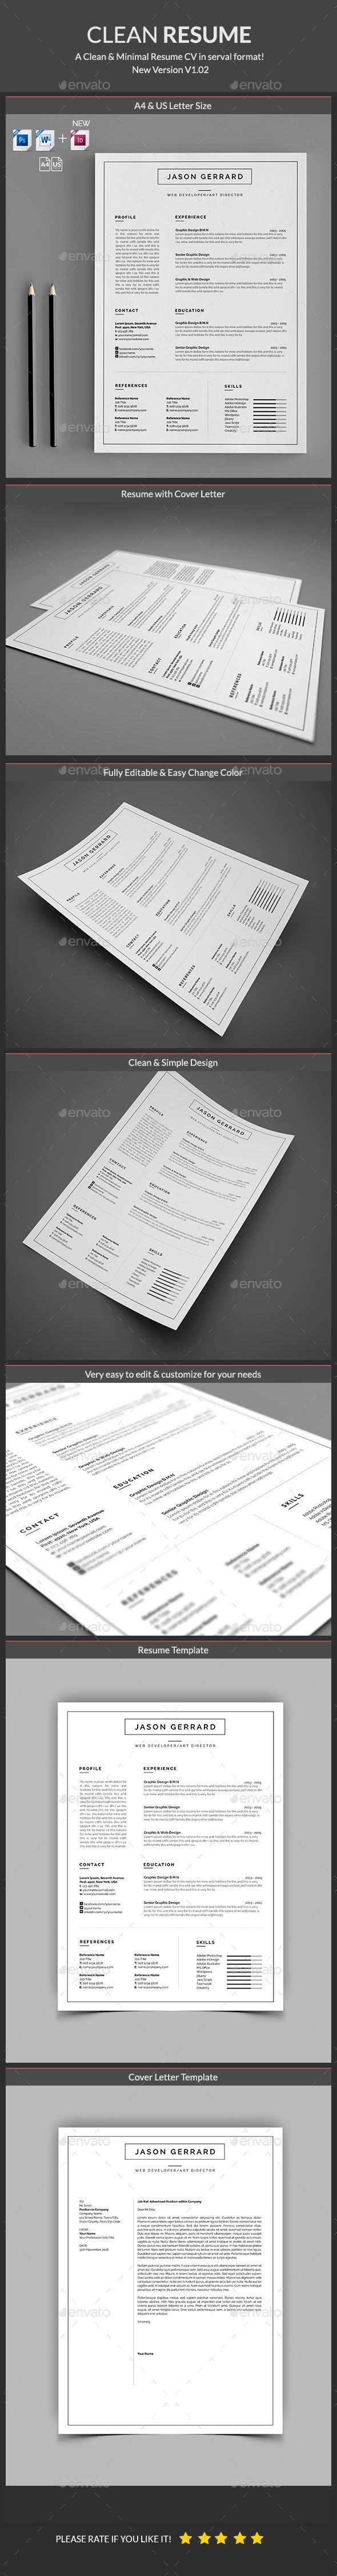 #Resume - Resumes Stationery Download here: https://graphicriver.net/item/resume/16496846?ref=alena994